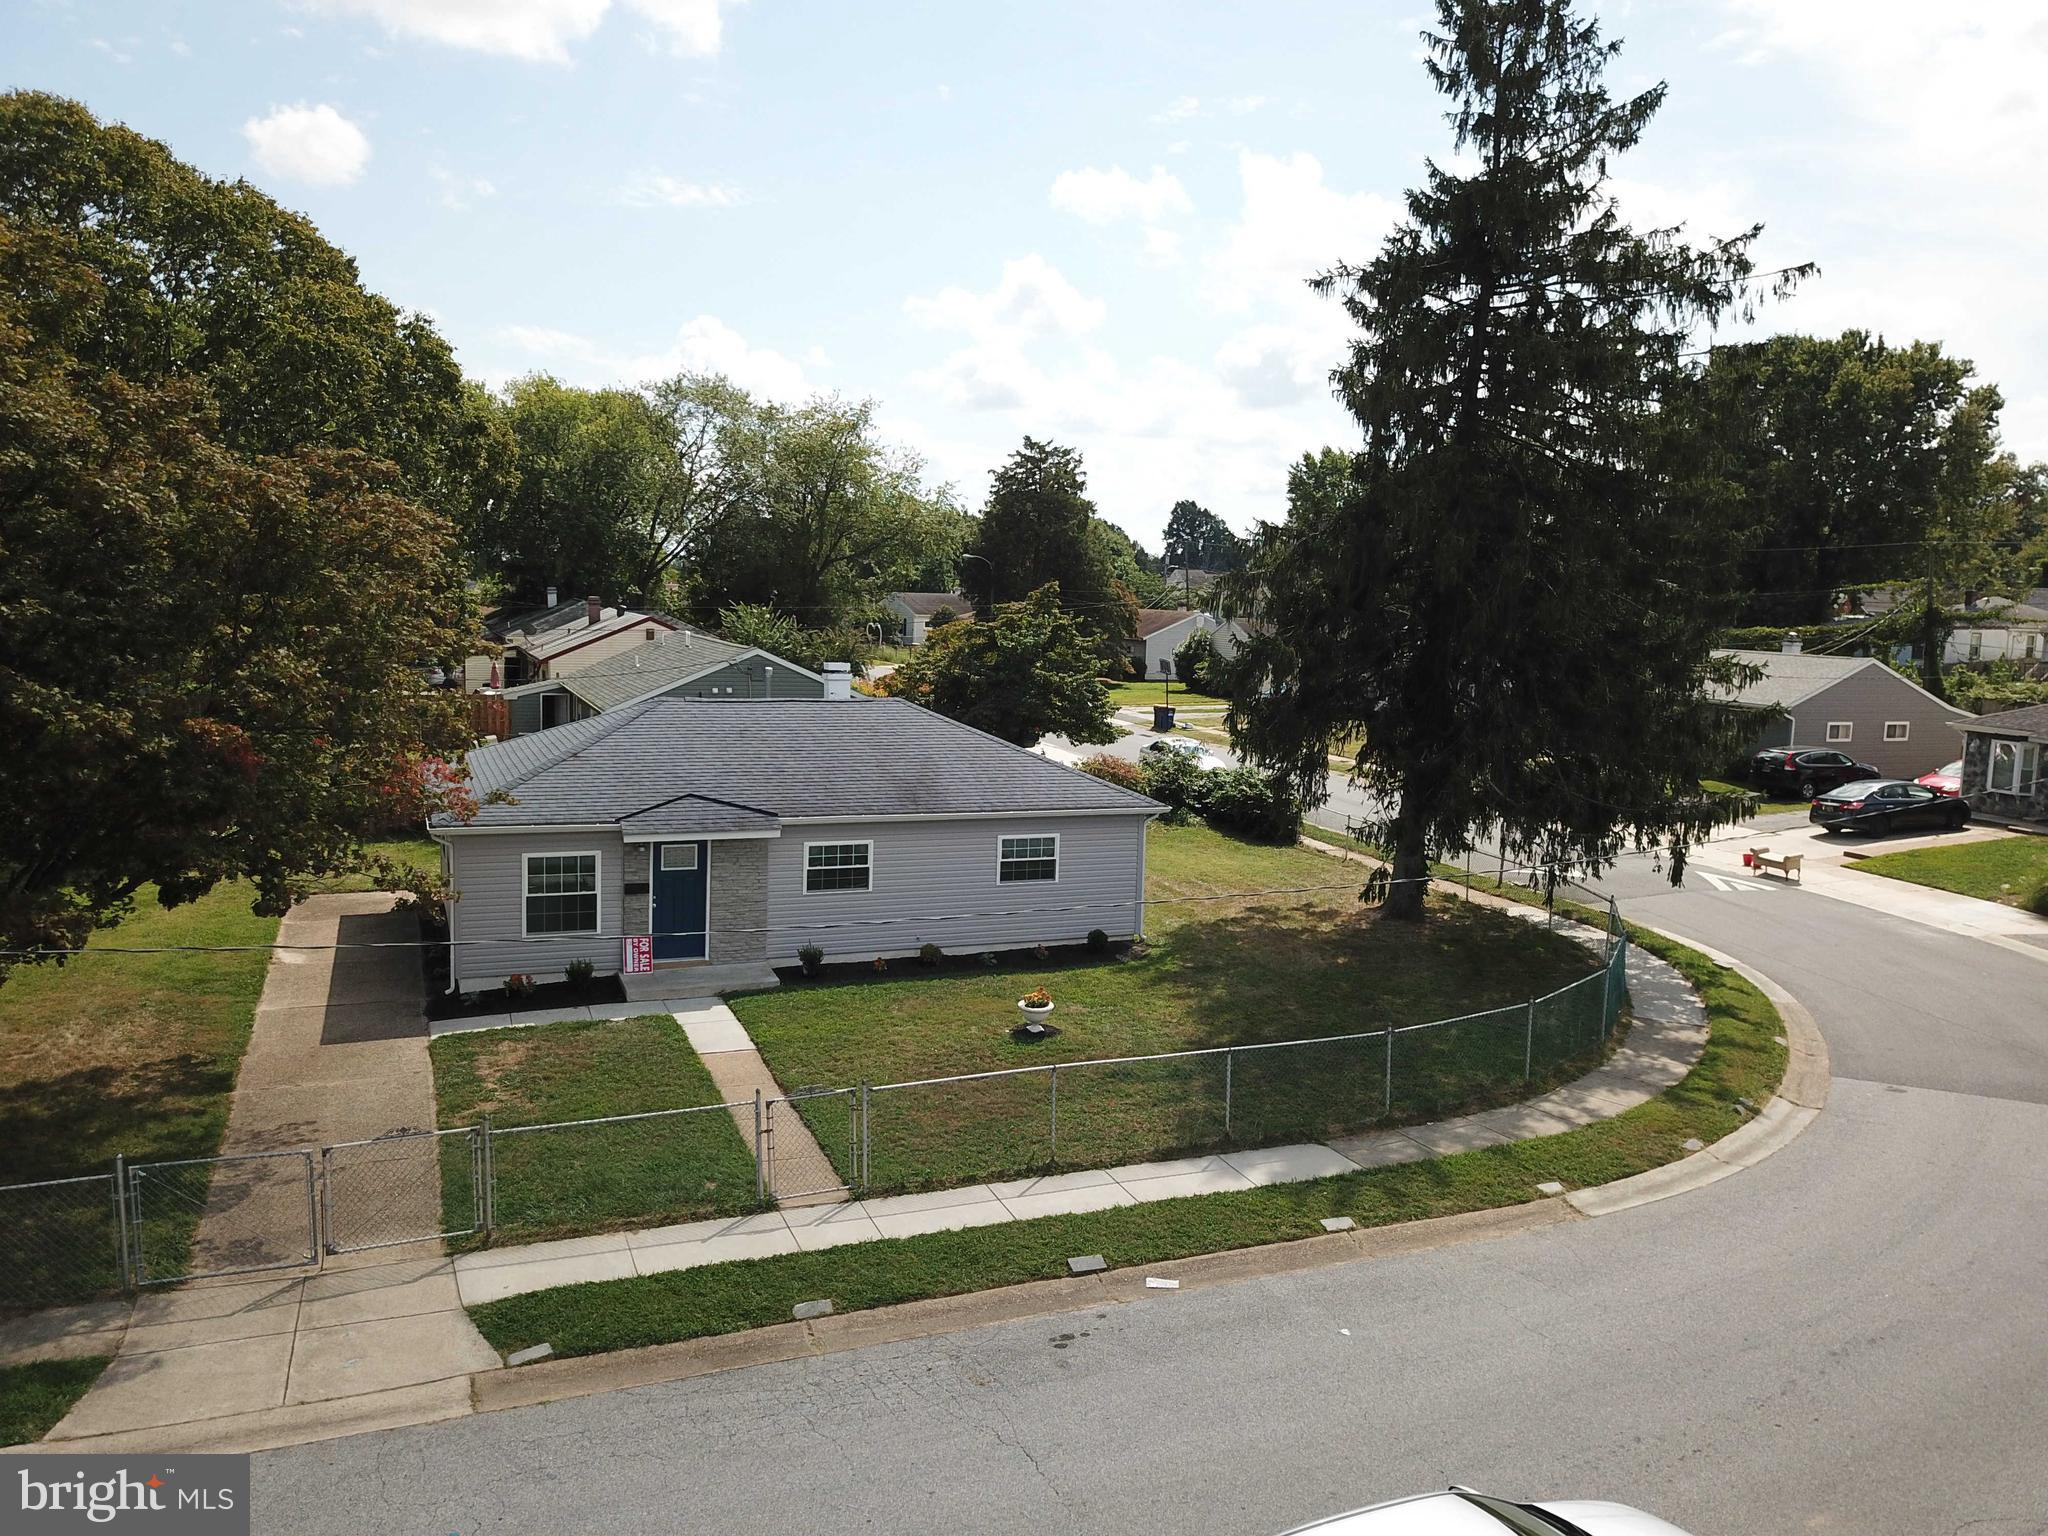 Located in Garfield Park, this 3-bedroom, 1-Bath Ranch home has been beautifully renovated. The home